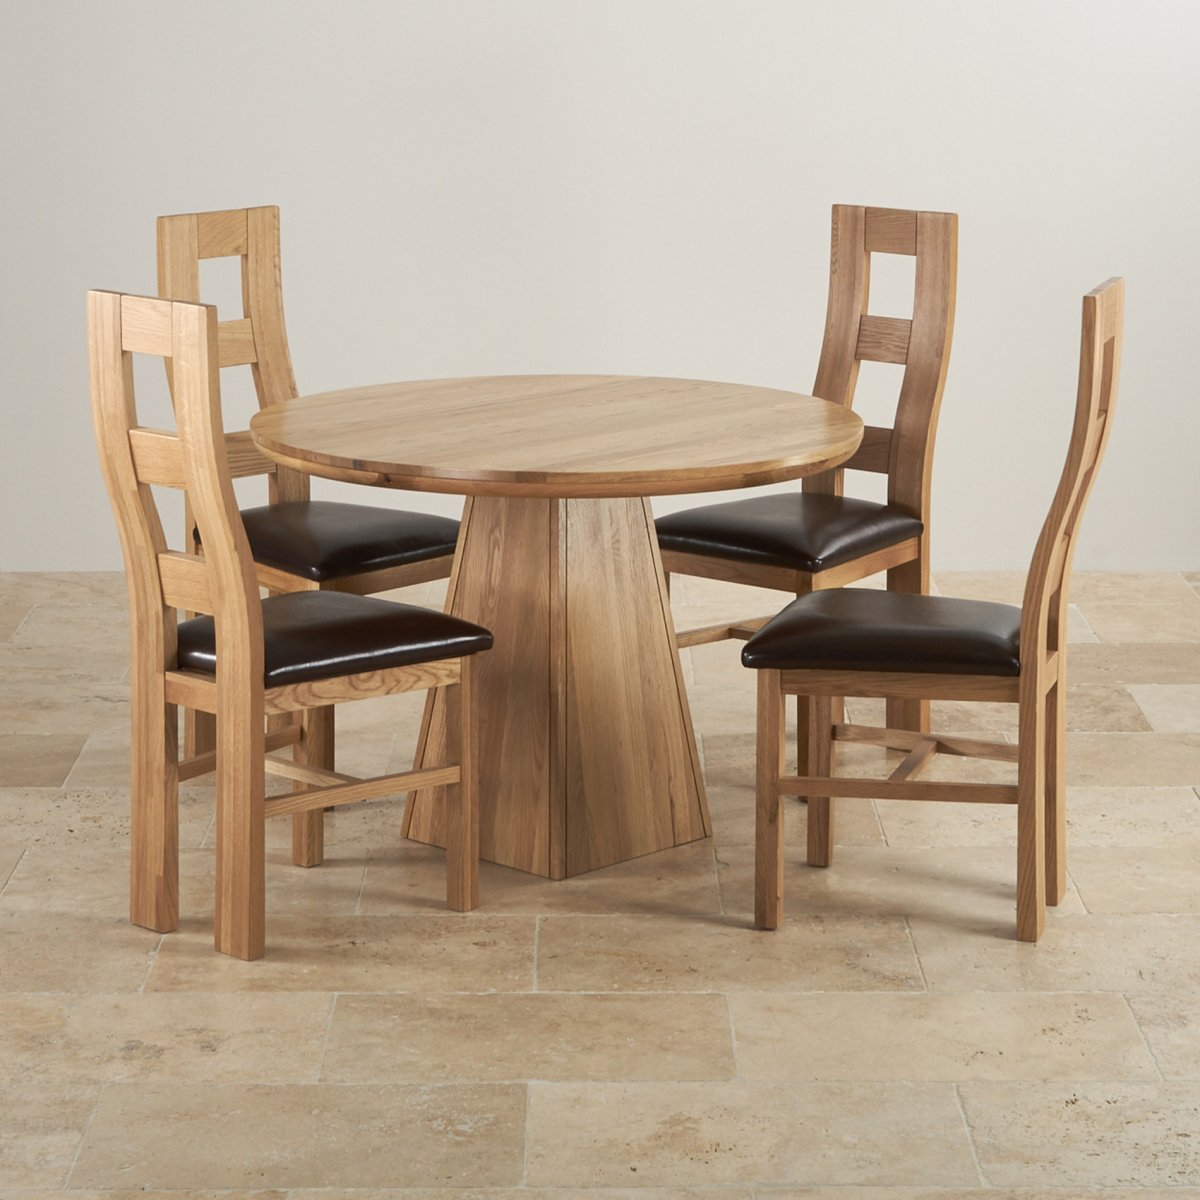 Provence solid oak dining set 3ft 7 table with 4 chairs for Round dining table set for 4